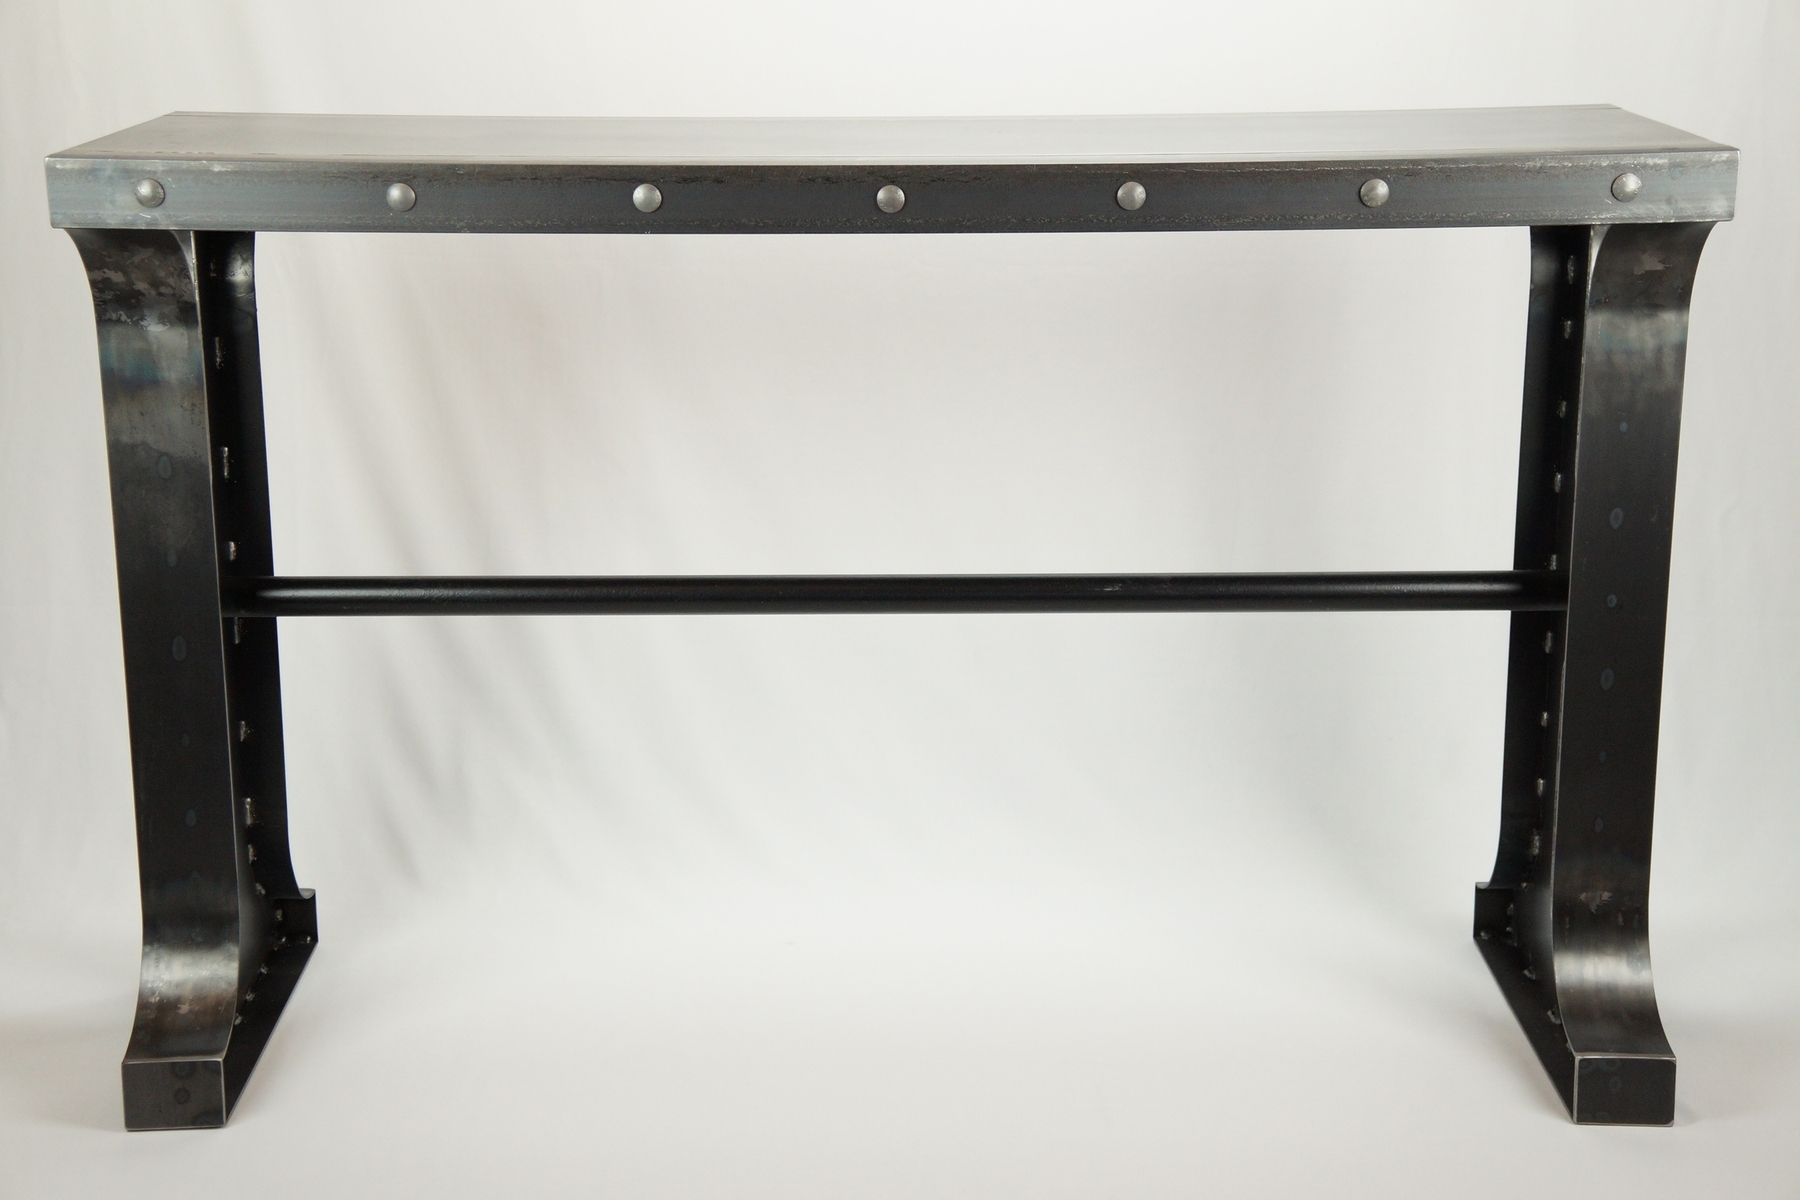 Buy a custom made industrial metal console table to